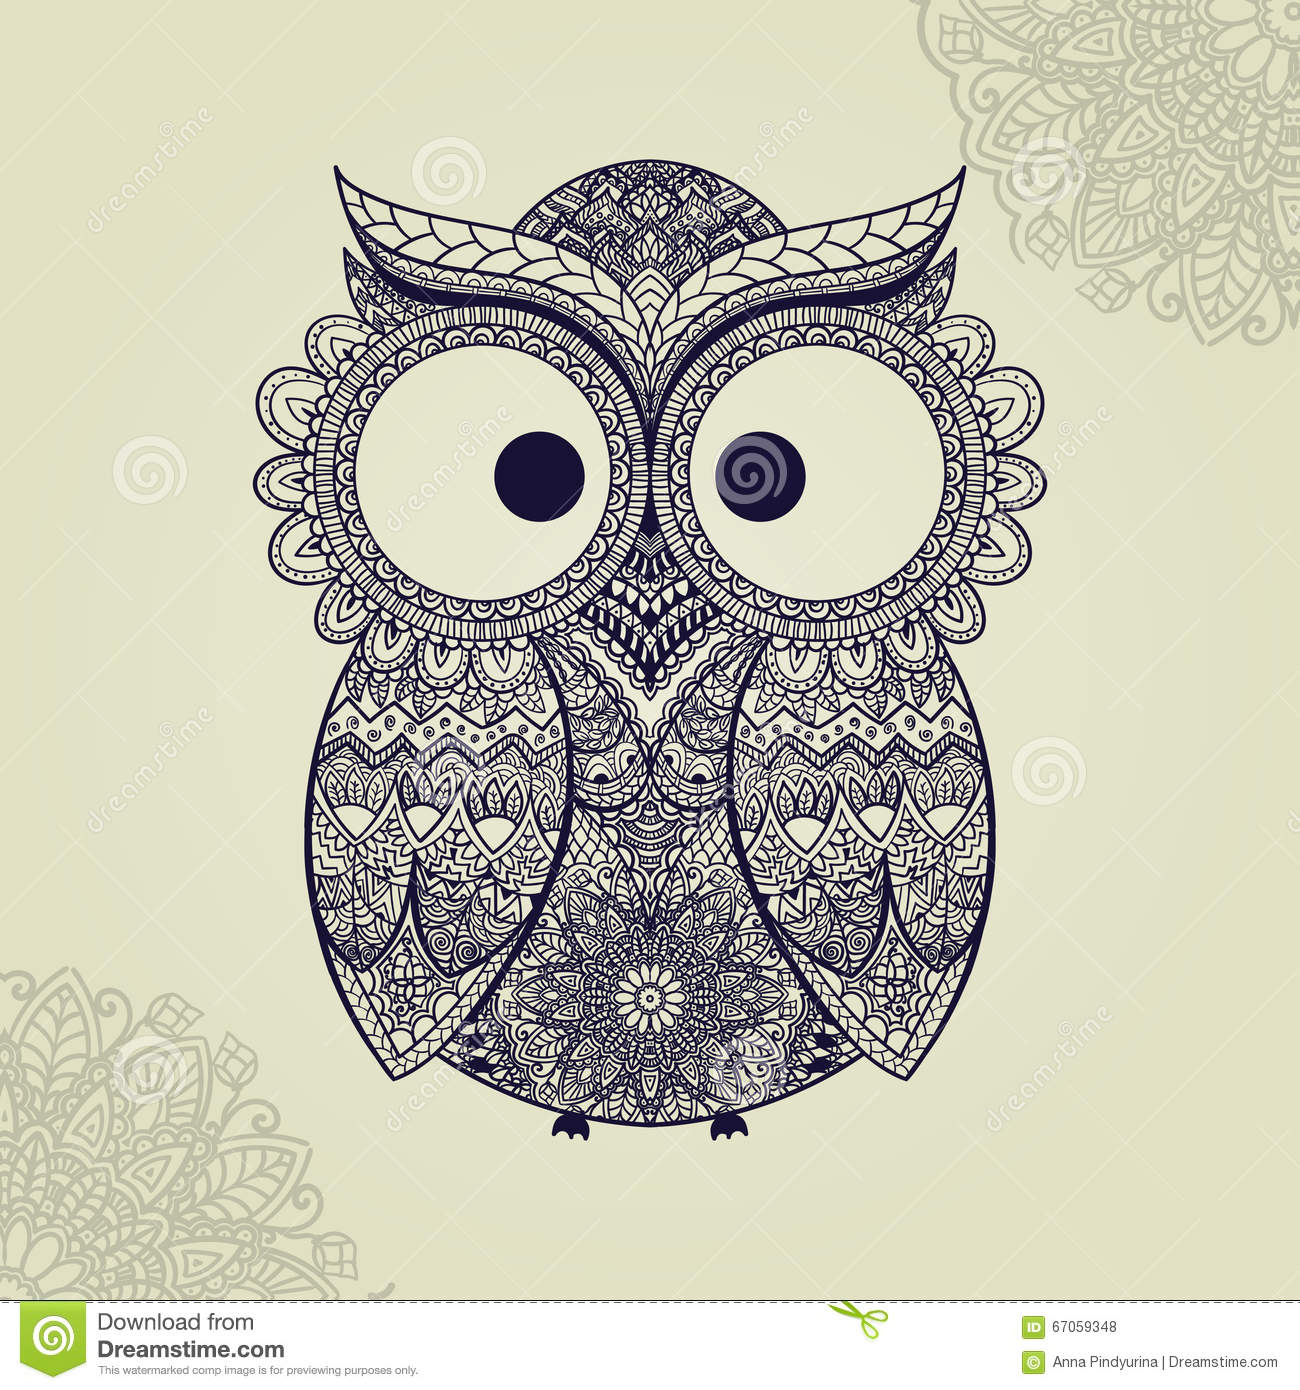 patterned owl on the ornamental mandala background africanindiantotemtattoo design it may be used for design of a t